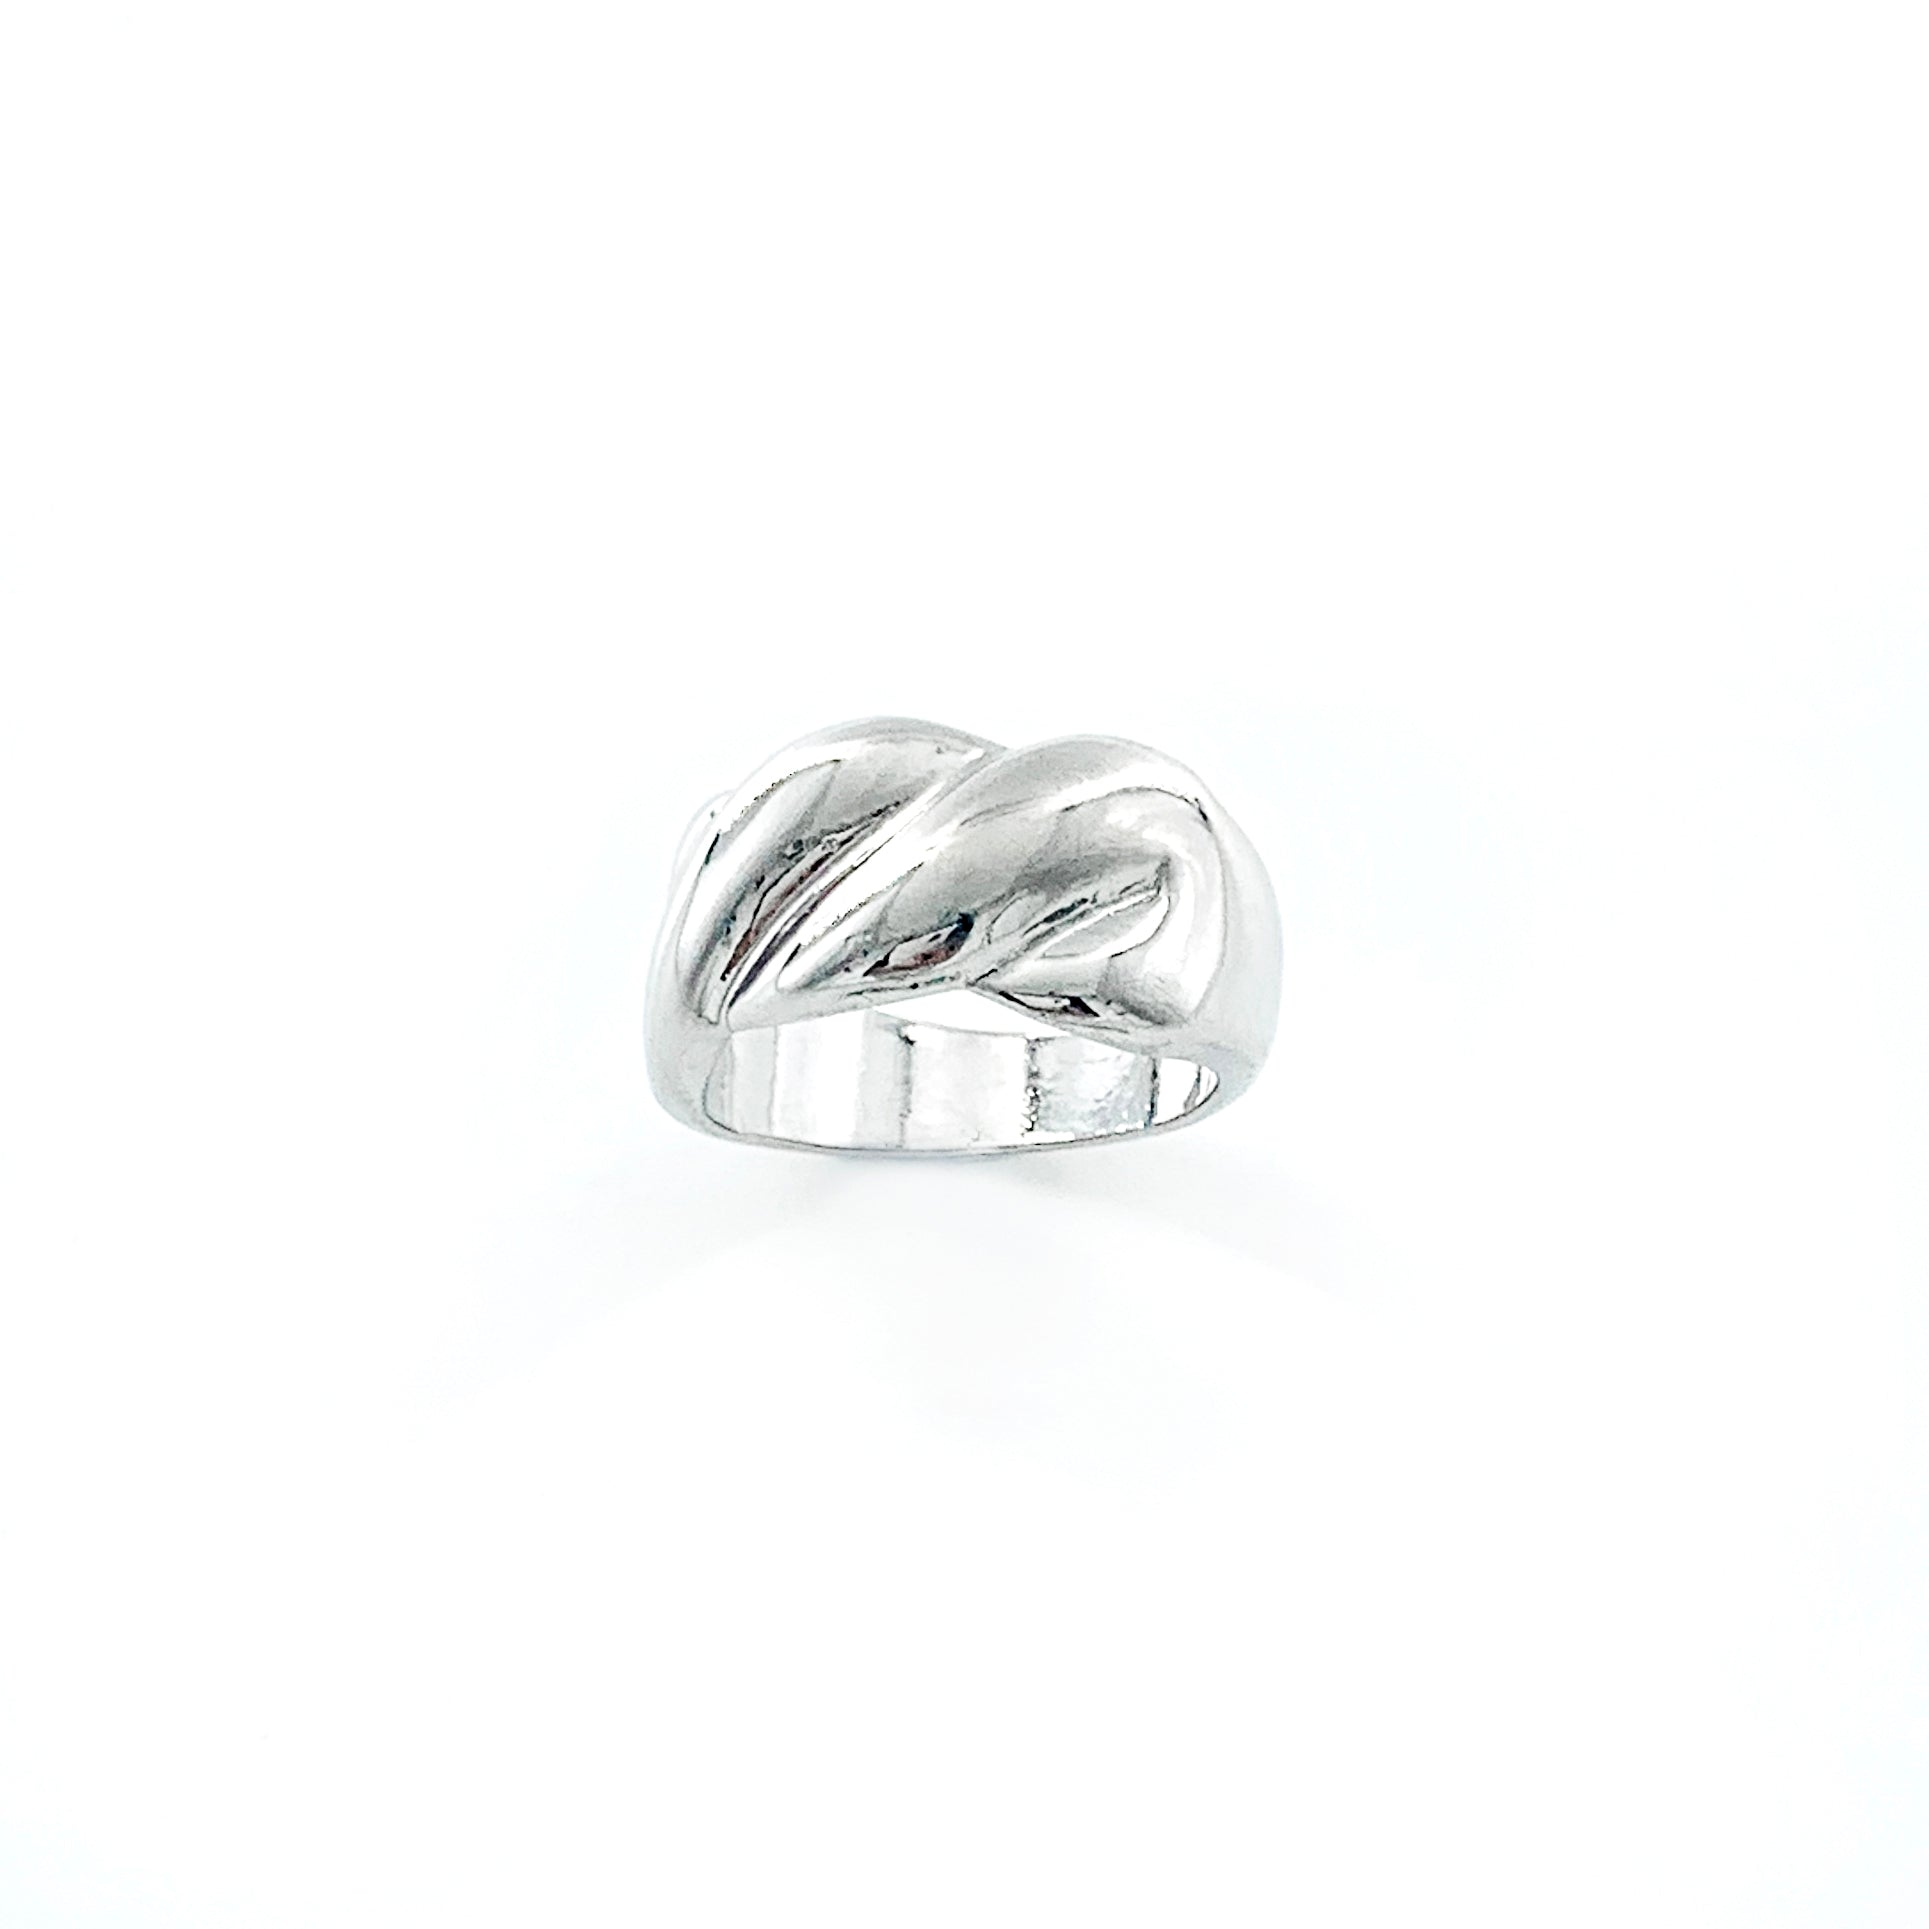 Chunky silver ring with twisted design